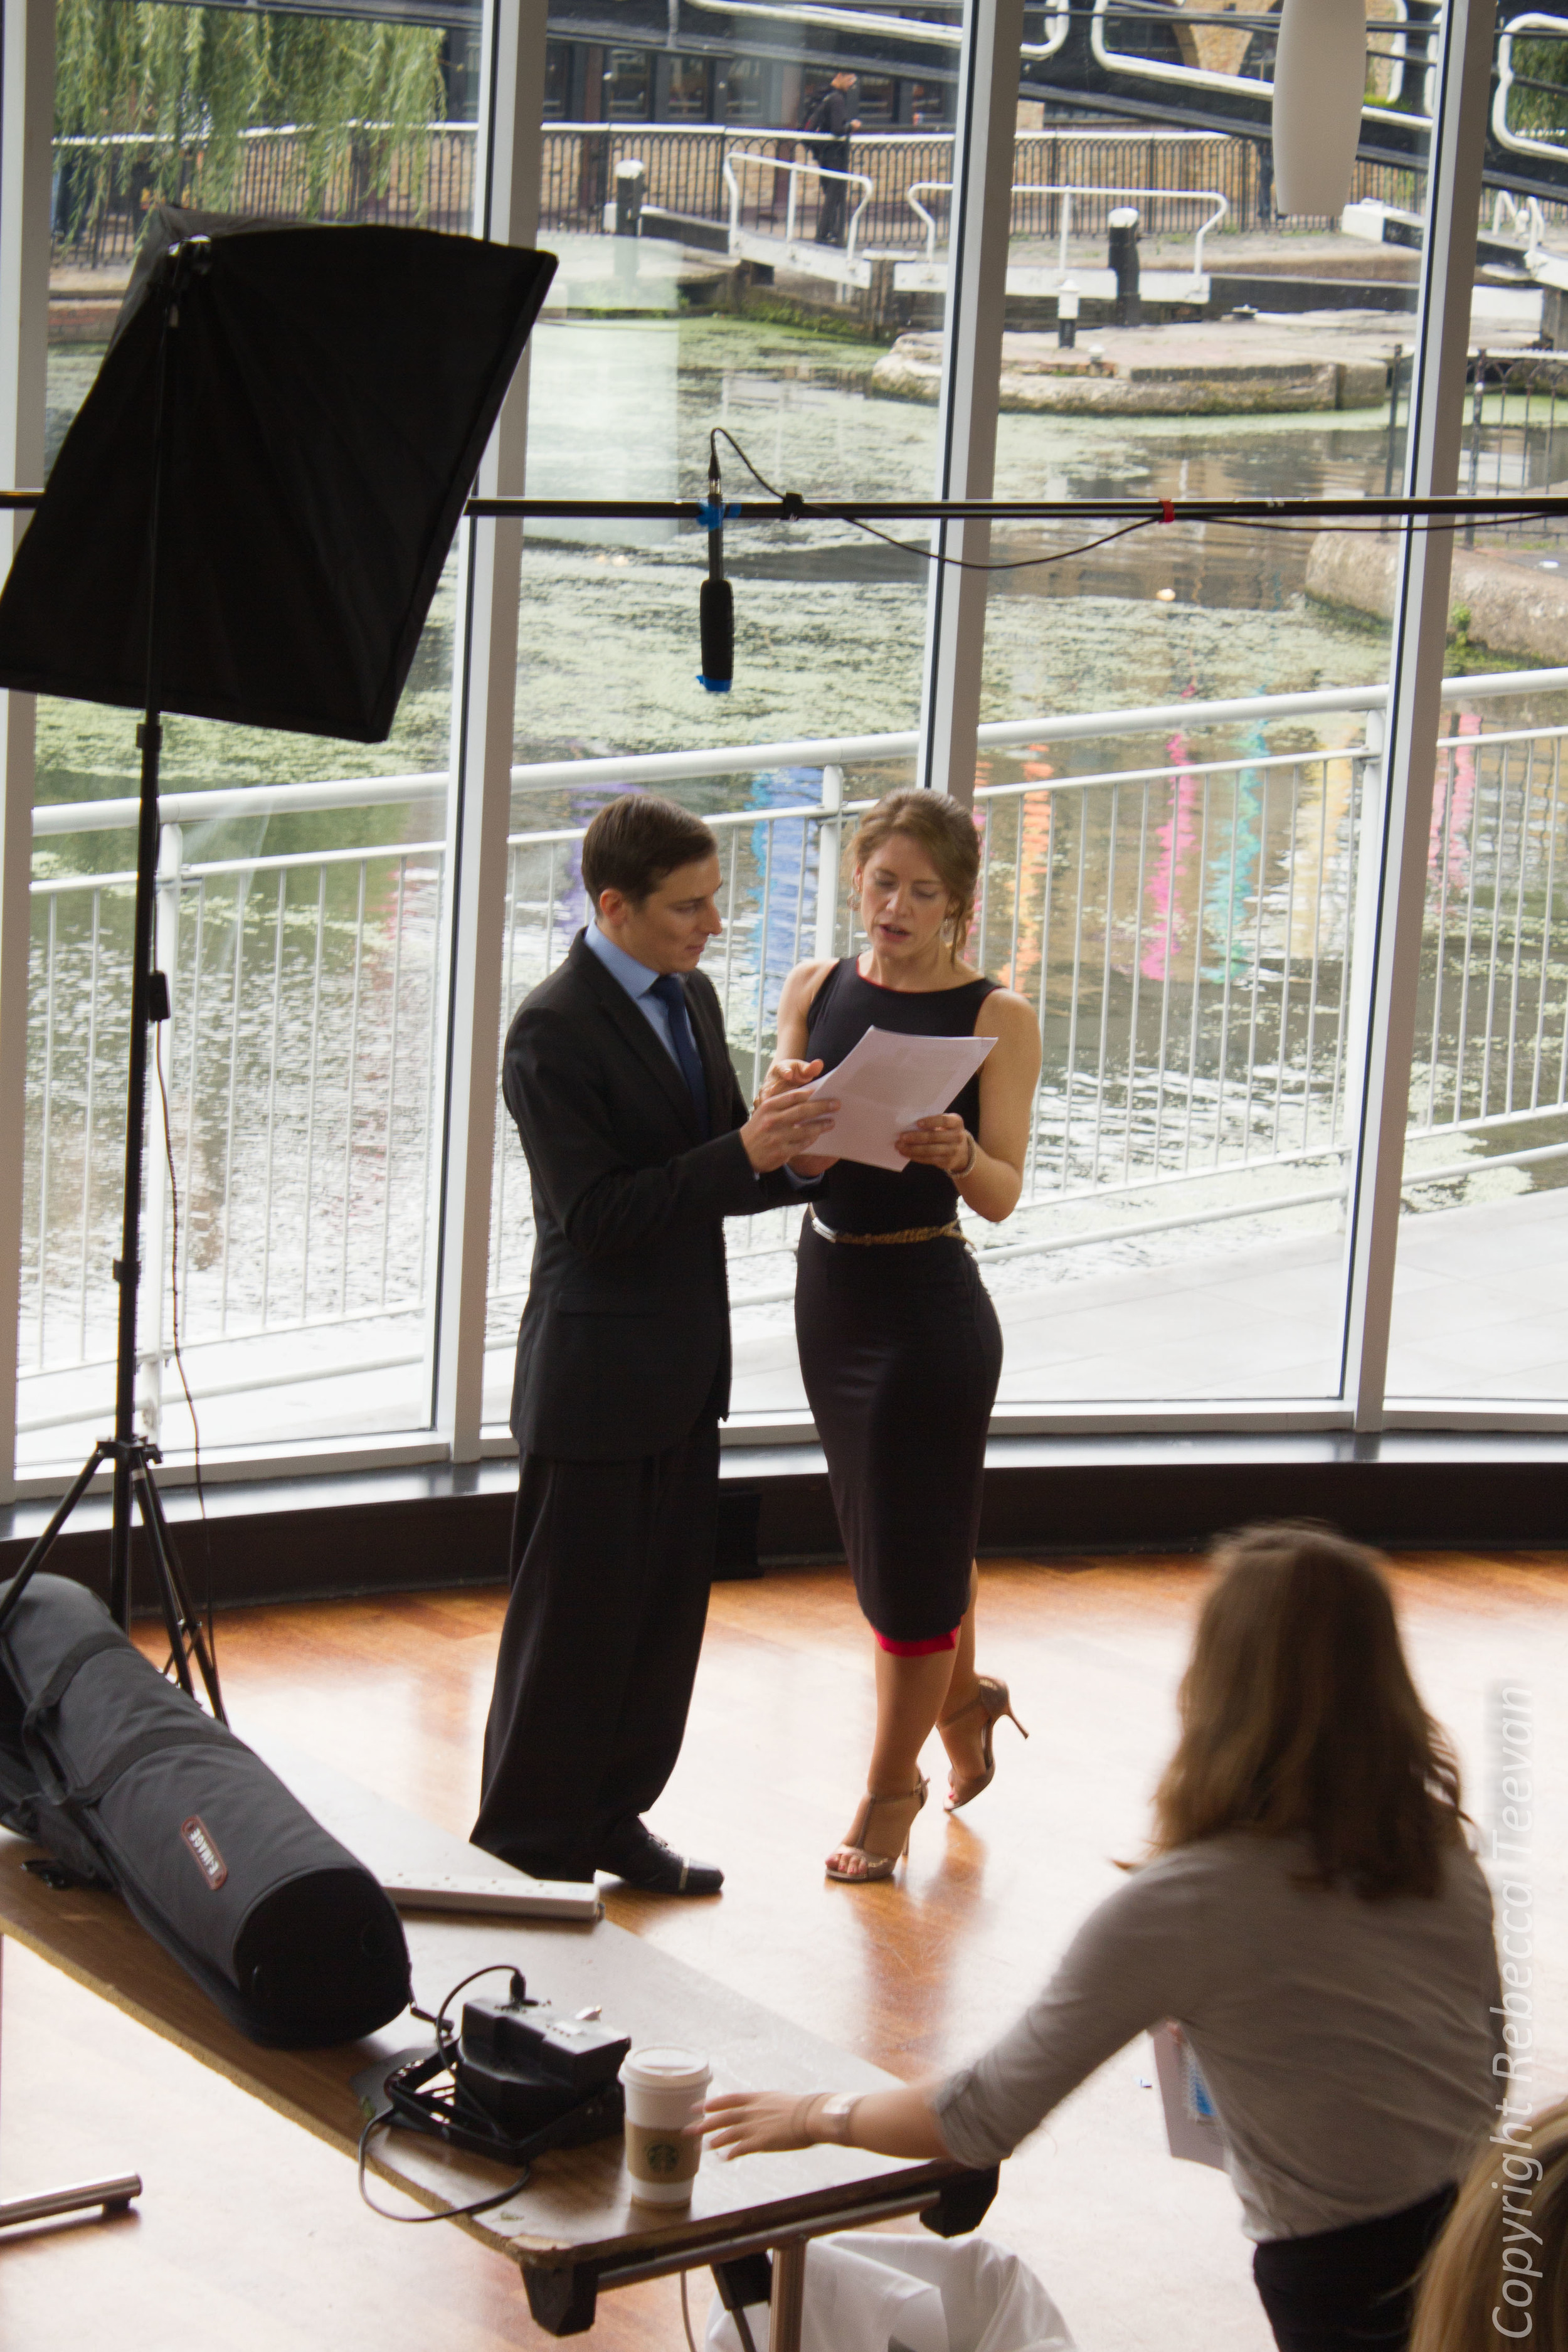 Tango Course - Shooting Day #1 - picture by Rebecca Teevan